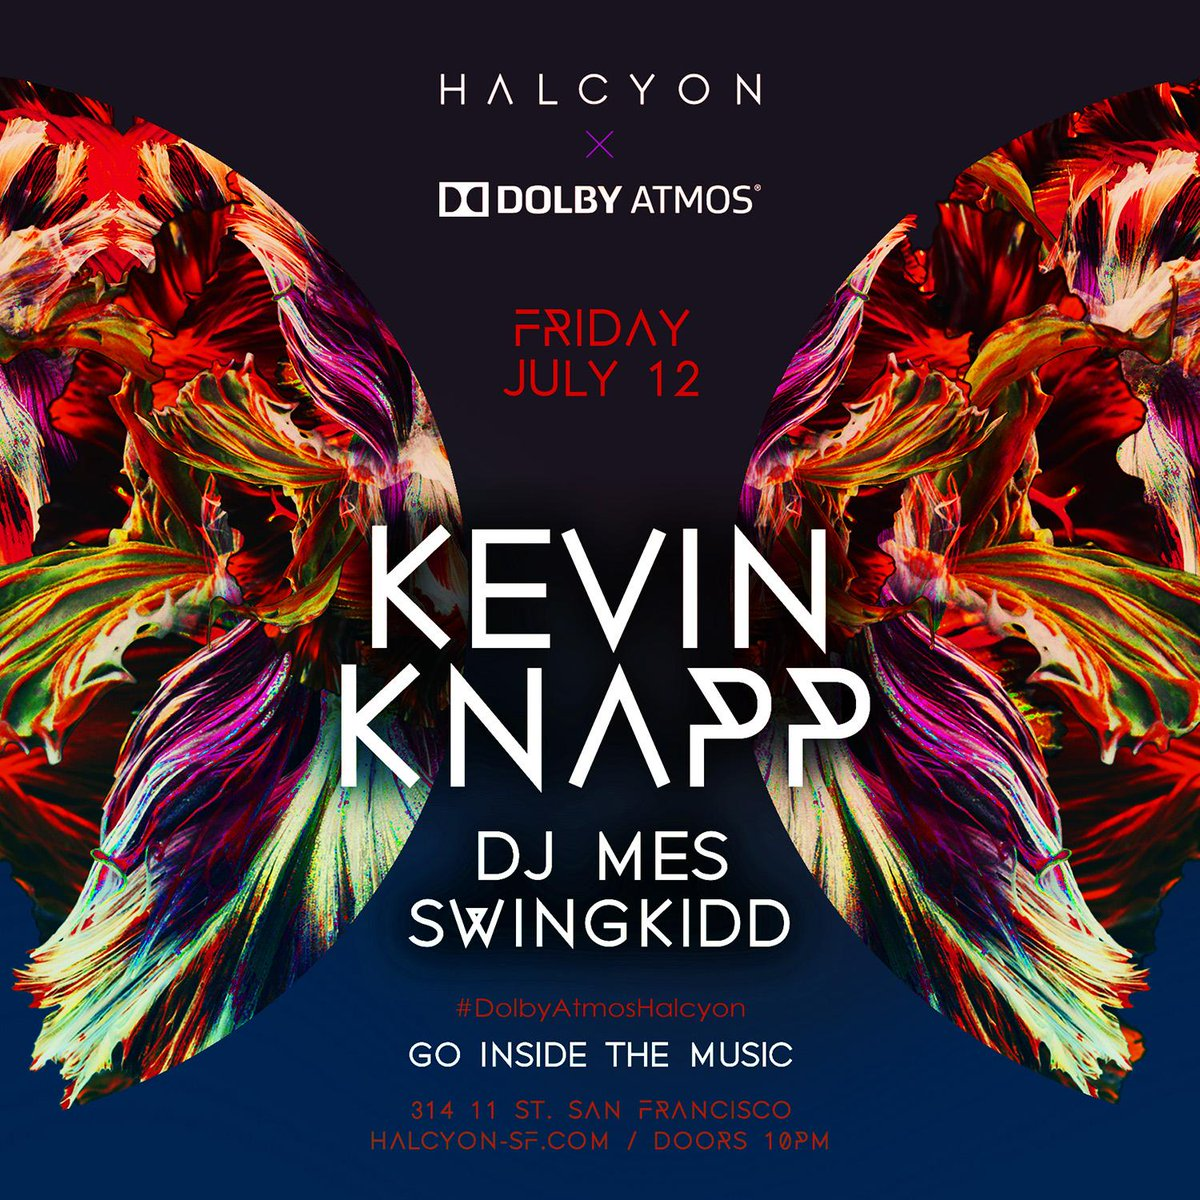 San Francisco! @Halcyon_SF is giving away 3 tickets to Kevin Knapp's show this Friday 7/12. To WIN reply with your favorite memory from your first show! We will pick winners 7/11 at 11AM PST.1 Ticket Per WinnerWinners must pick up tickets from Will Call before 12 AM Midnight